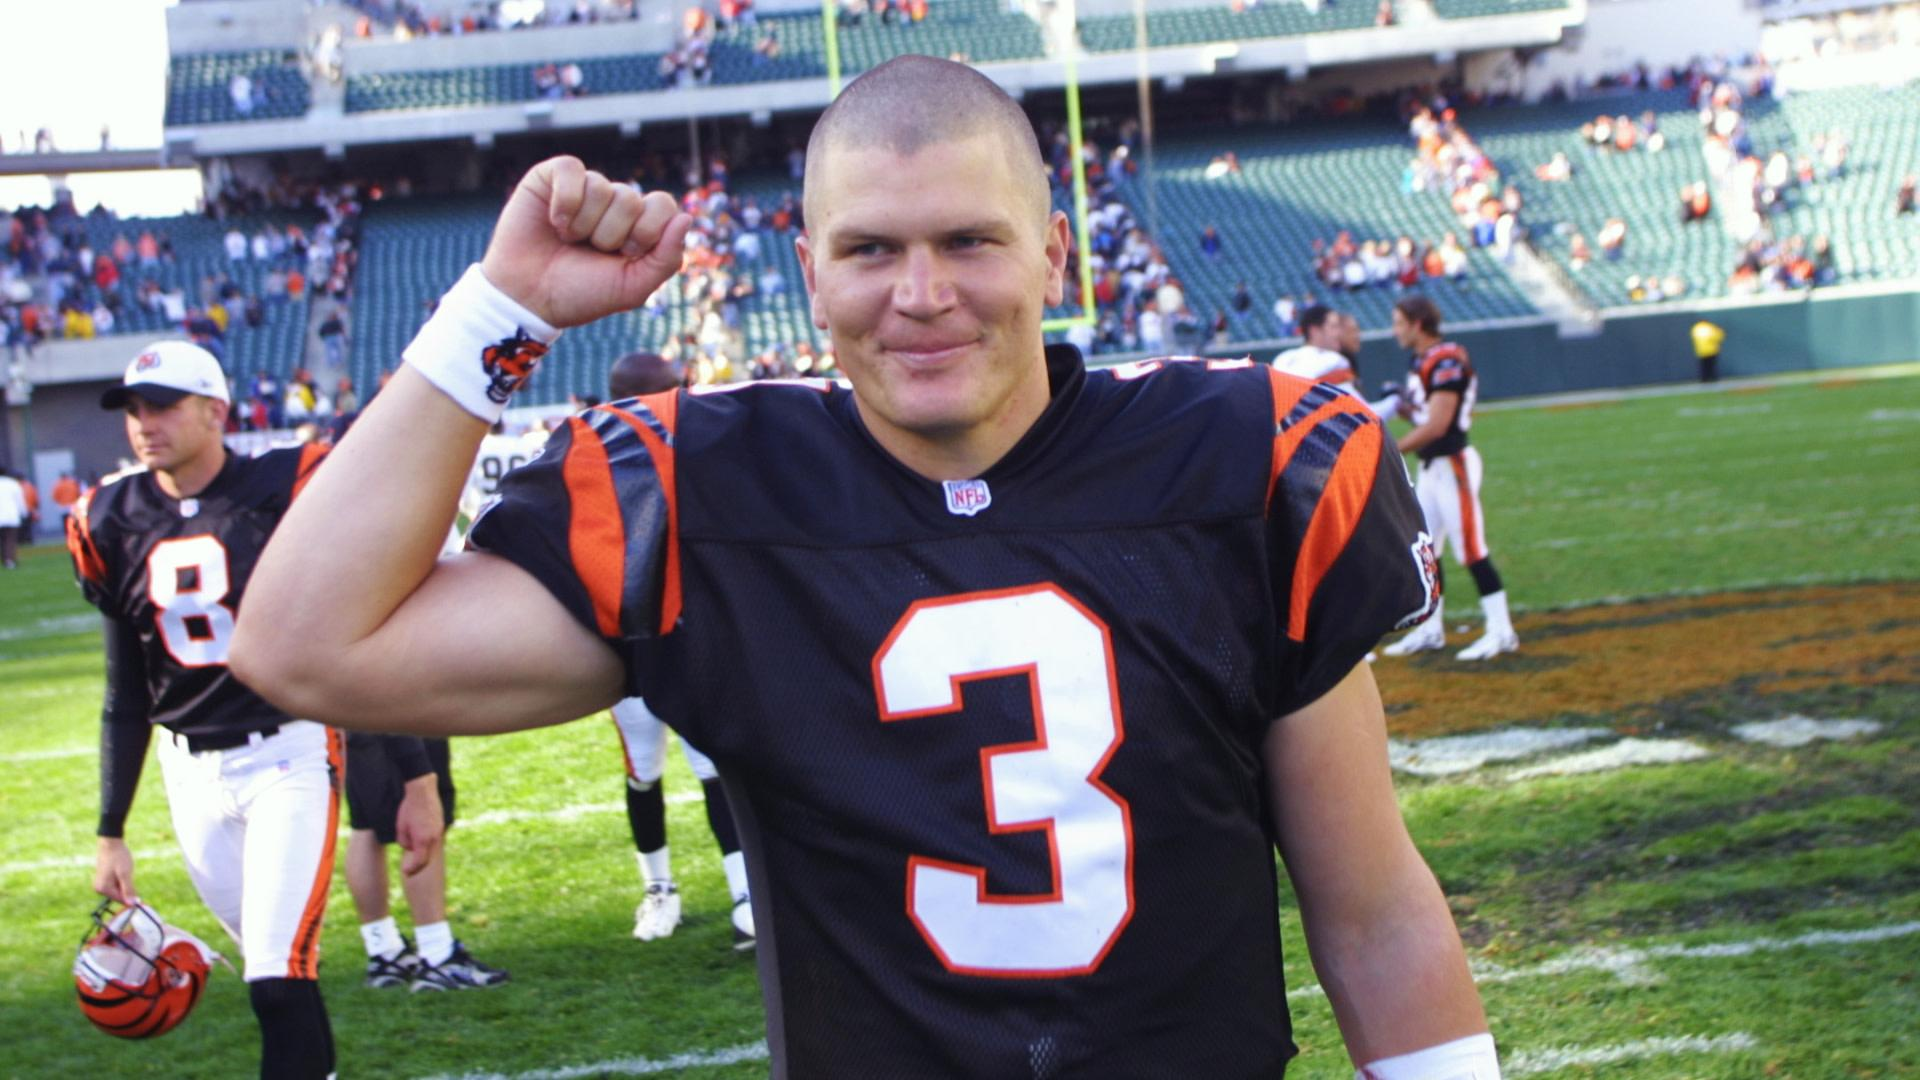 Former NFL Quarterback Jon Kitna Claims Ex-Wideout Was Drunk During Game